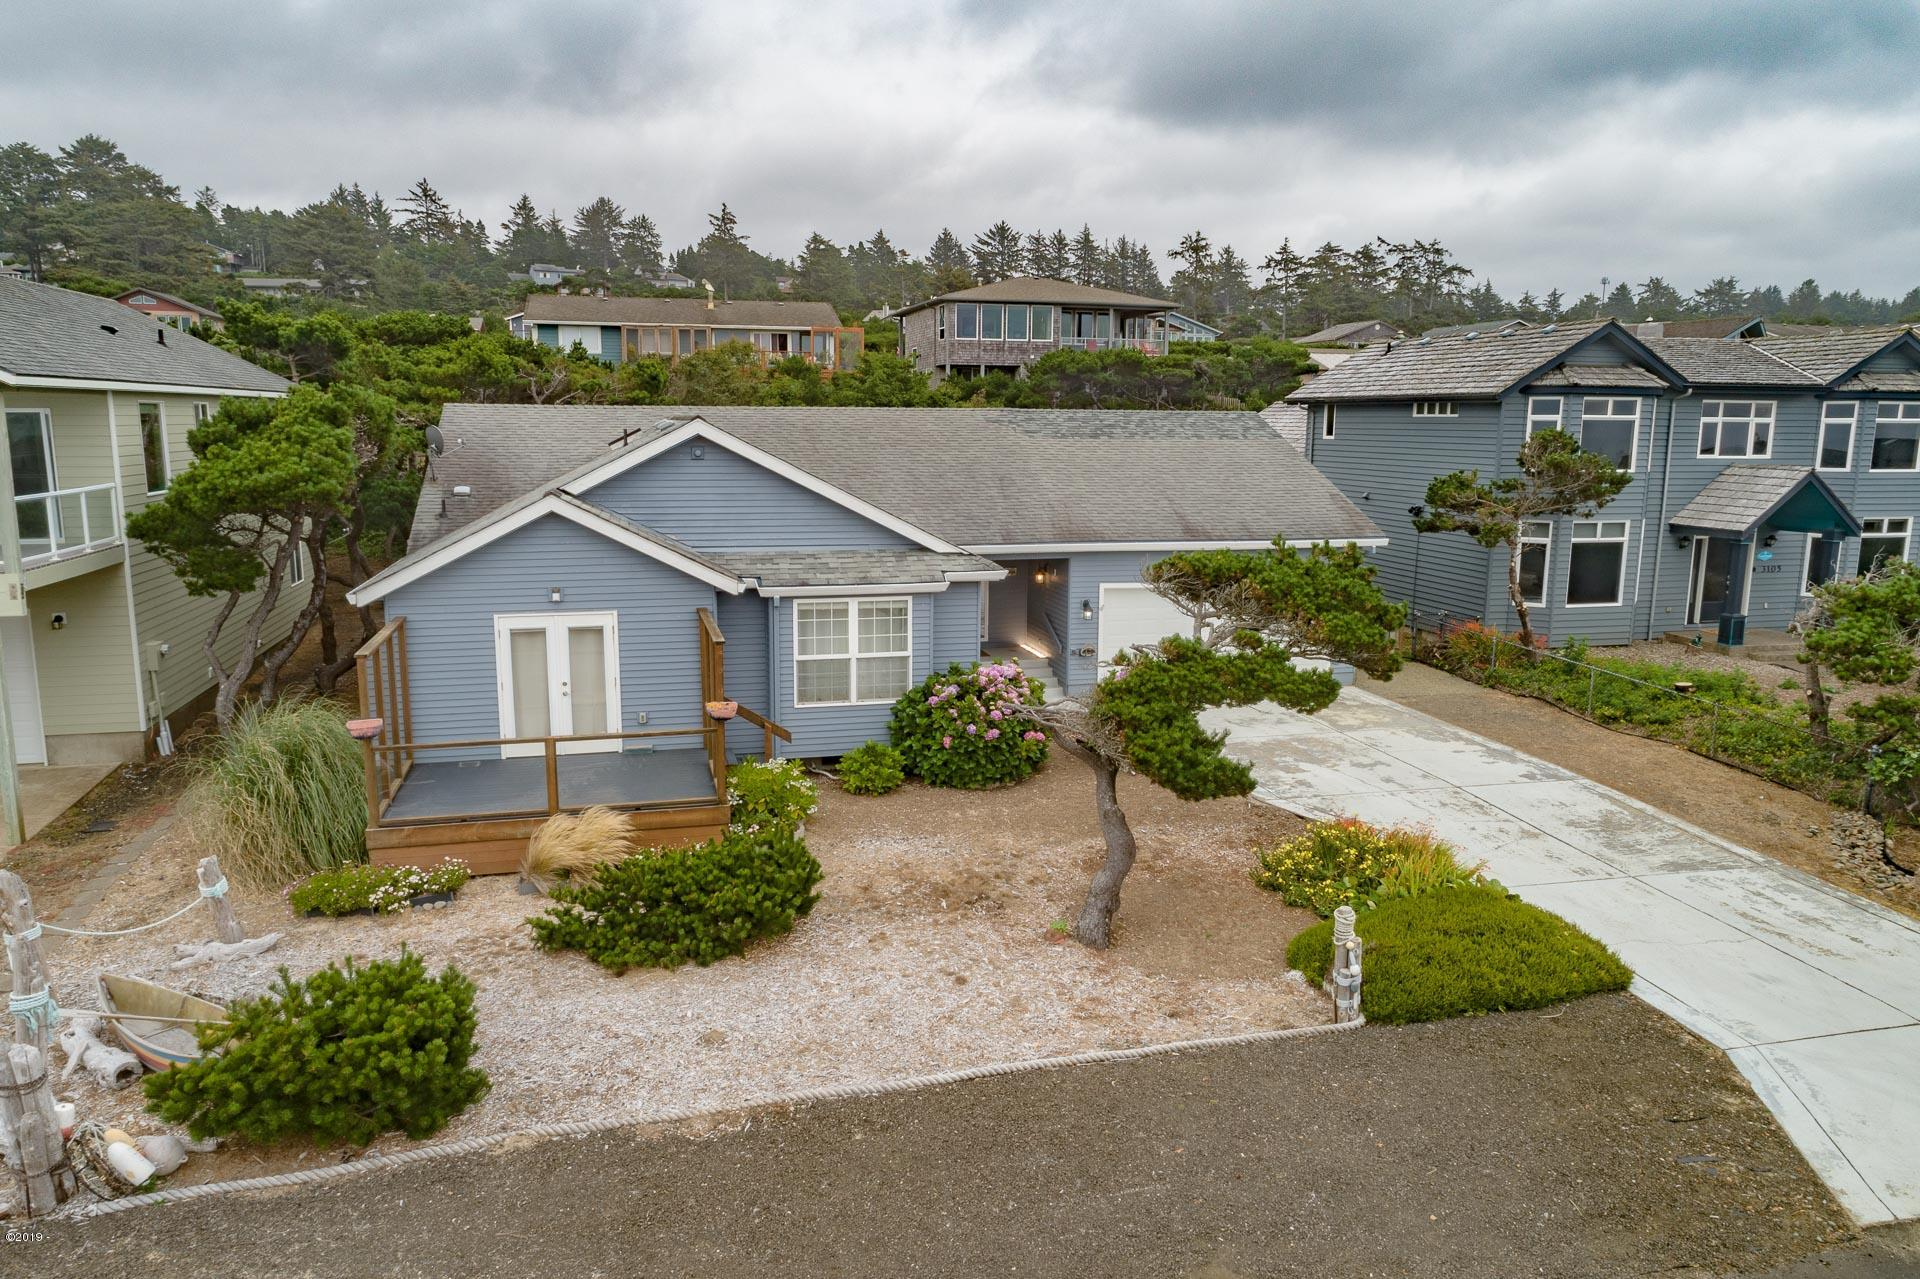 3201 NW Oceania Dr, Waldport, OR 97394